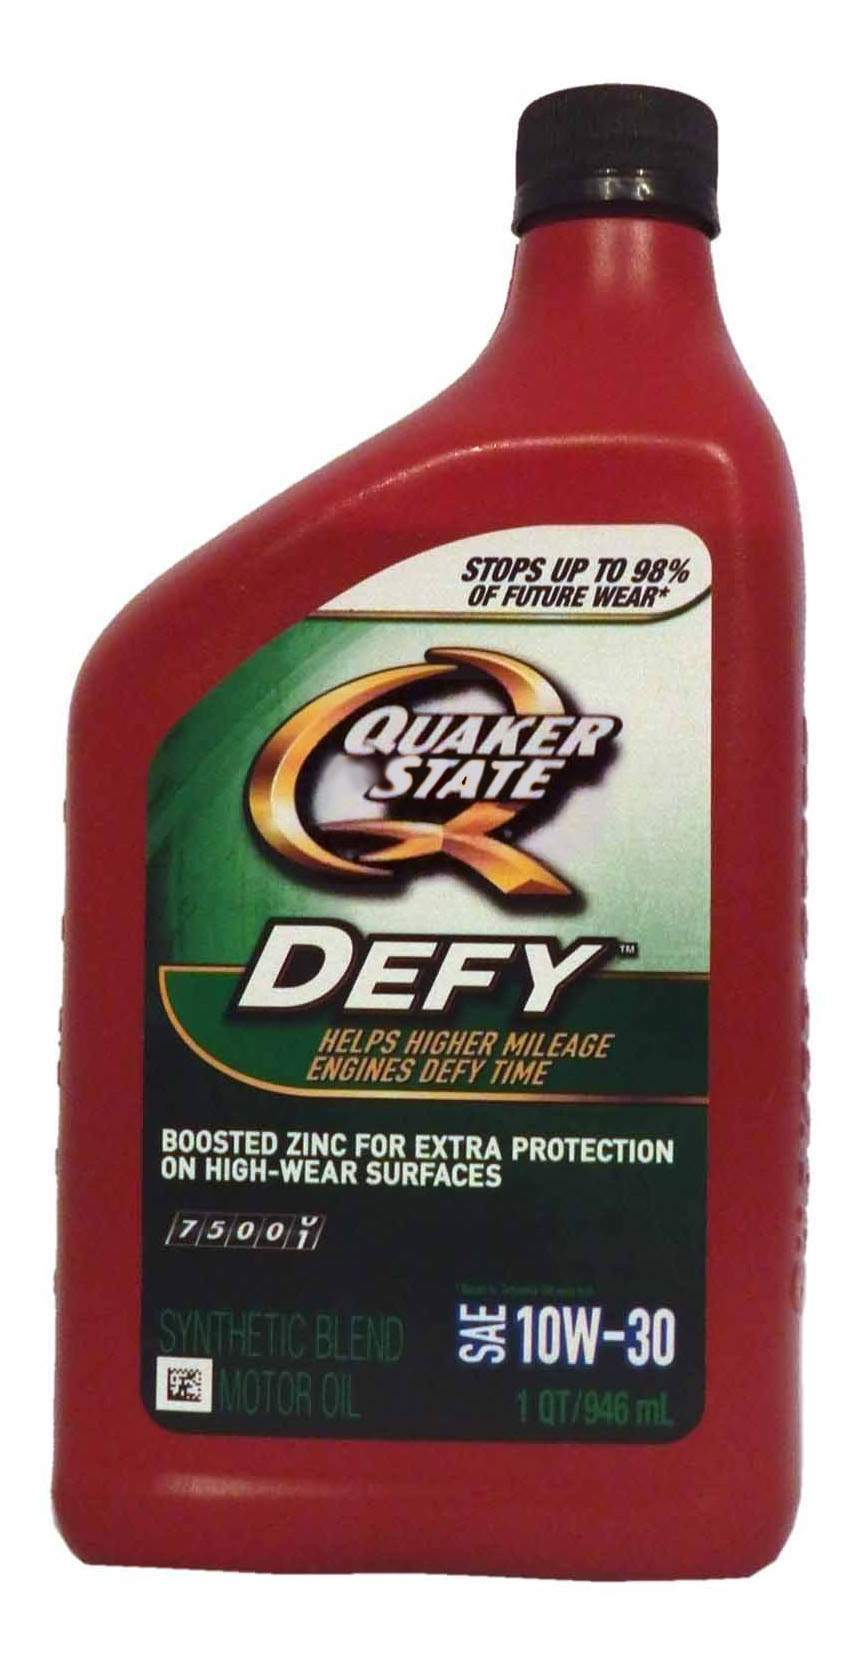 Quaker State Defy Synthetic Blend SAE 10W-30 Motor Oil